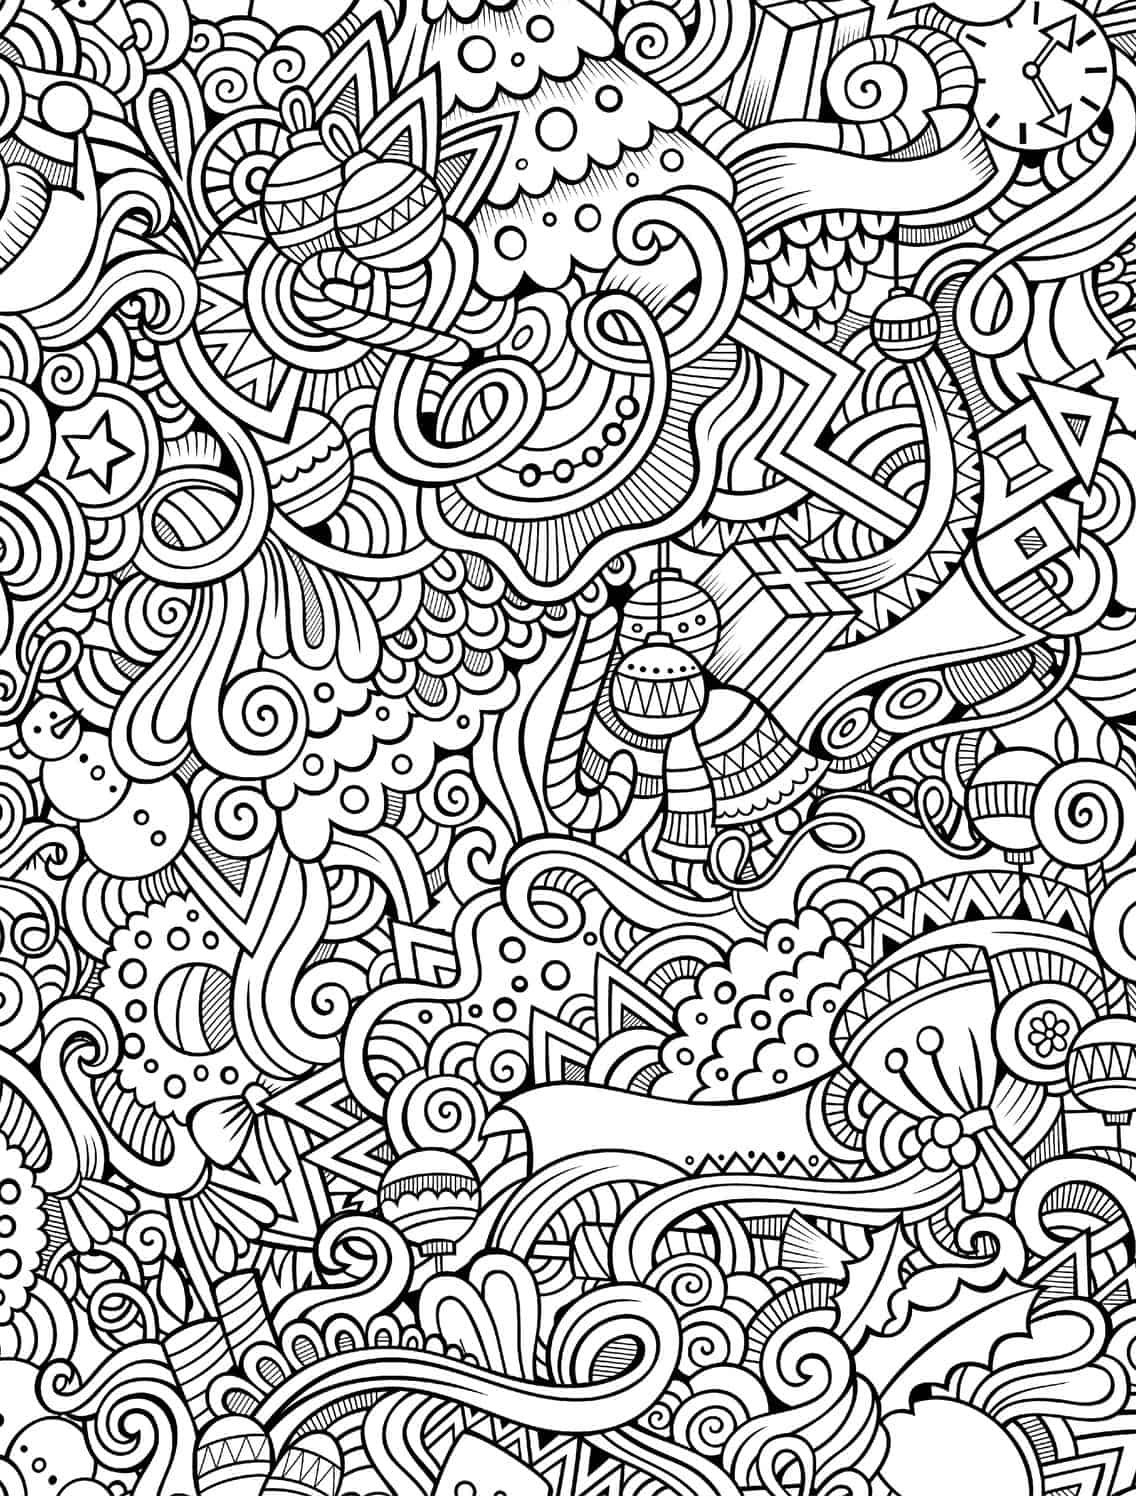 10 free printable holiday adult coloring pages for Coloring pages to print for adults